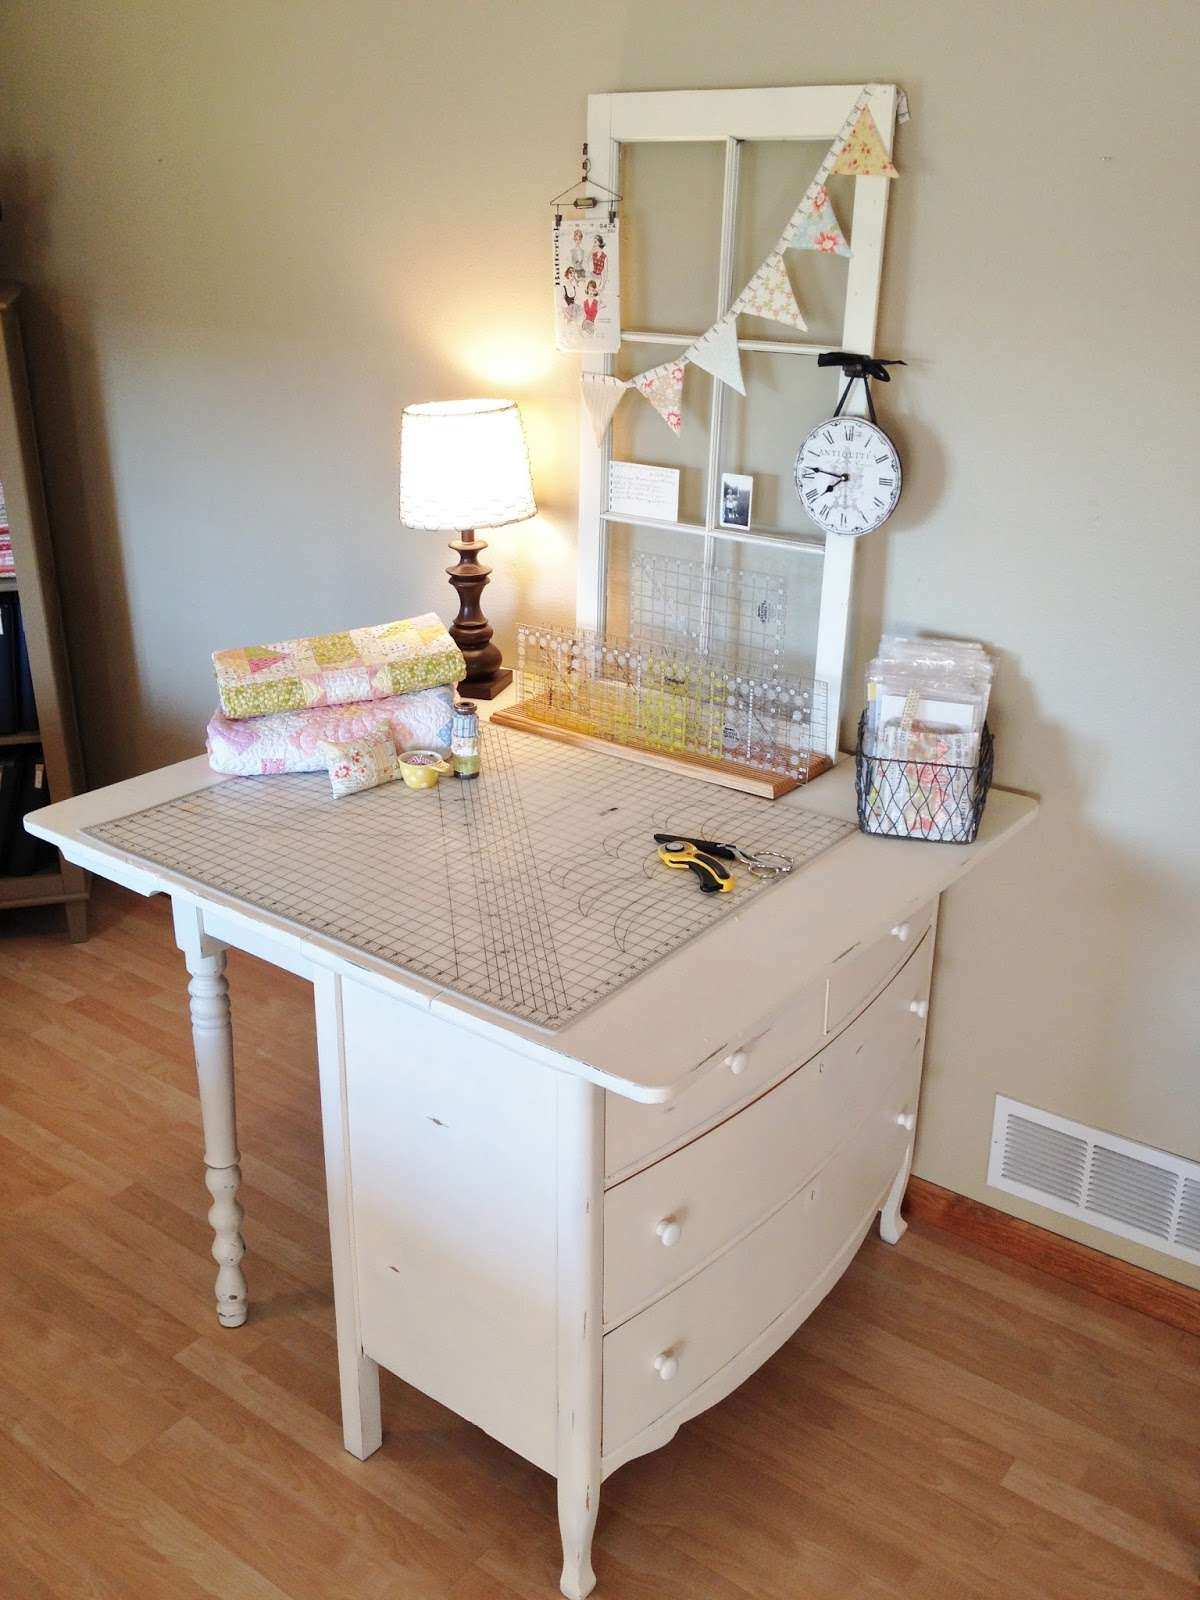 A cutting table in white with a lamp